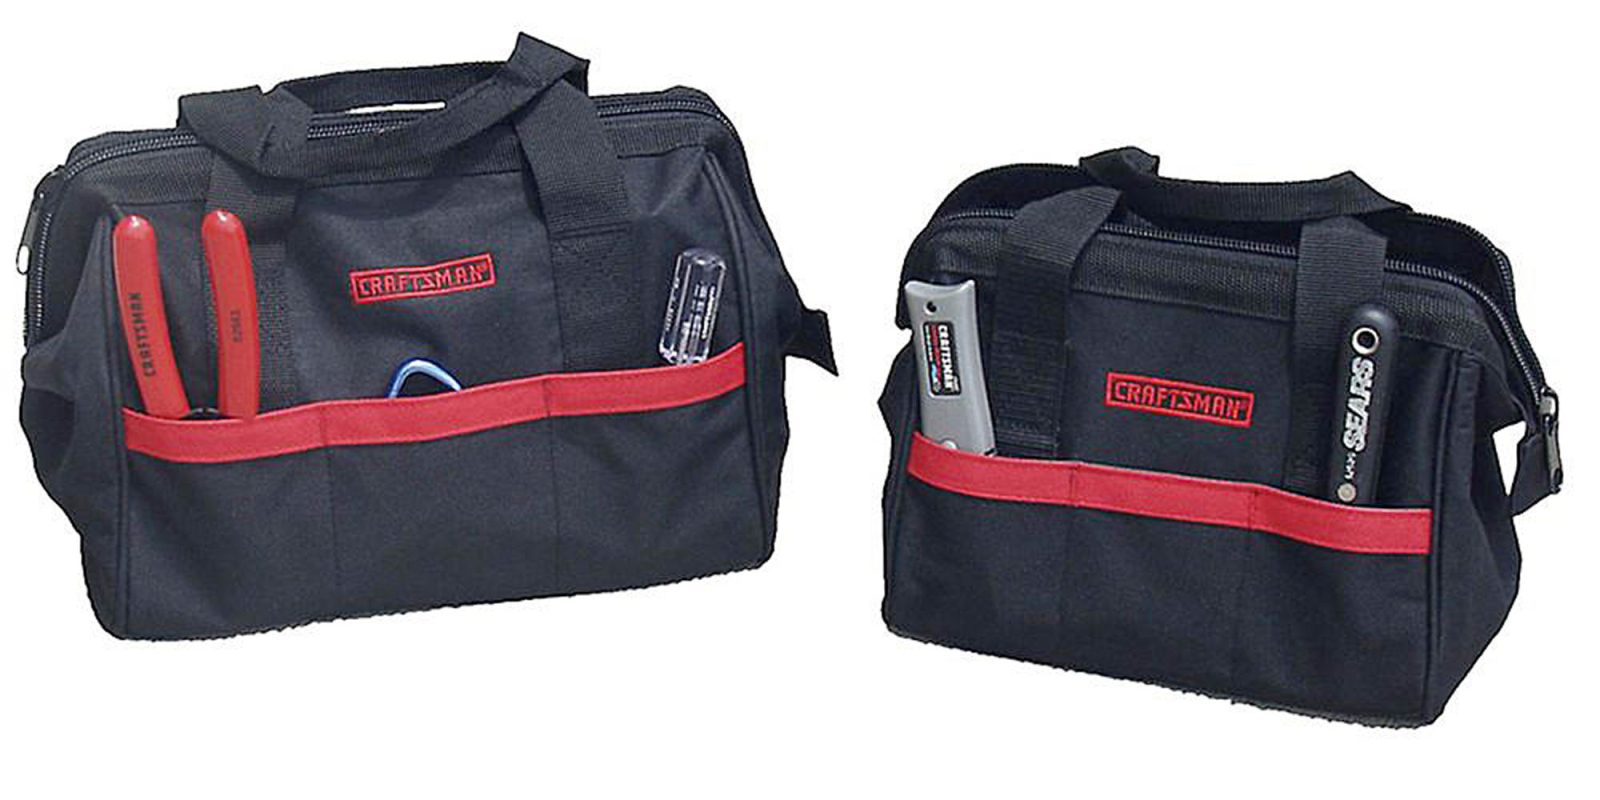 Add two Craftsman tool bags to your DIY setup from $5 with in-store pickup